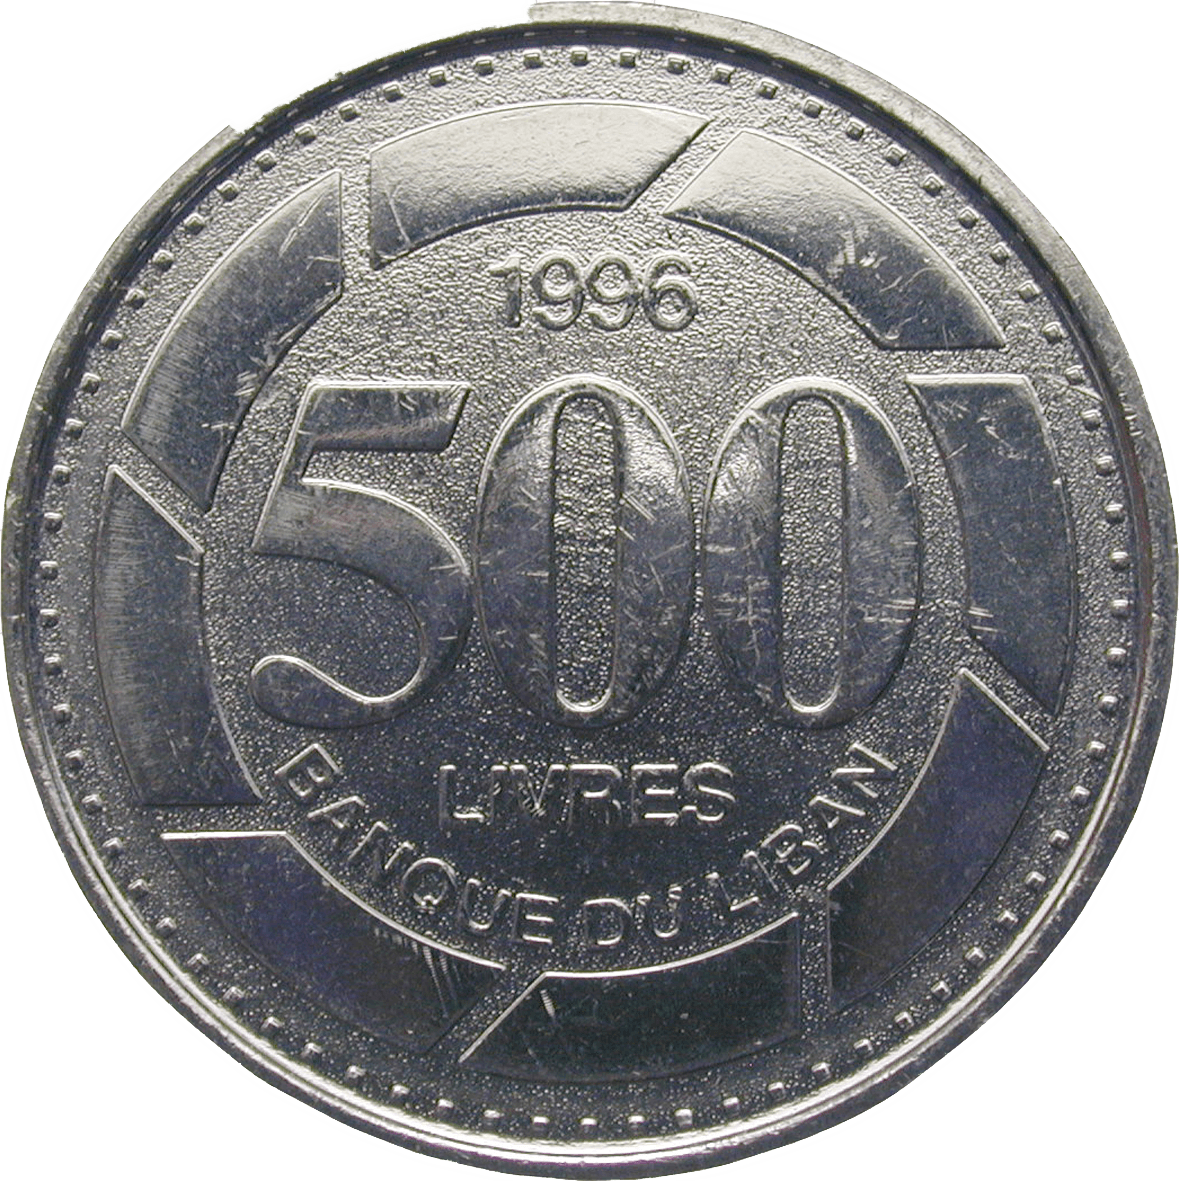 Republic of Lebanon, 500 Lira 1996 (reverse)